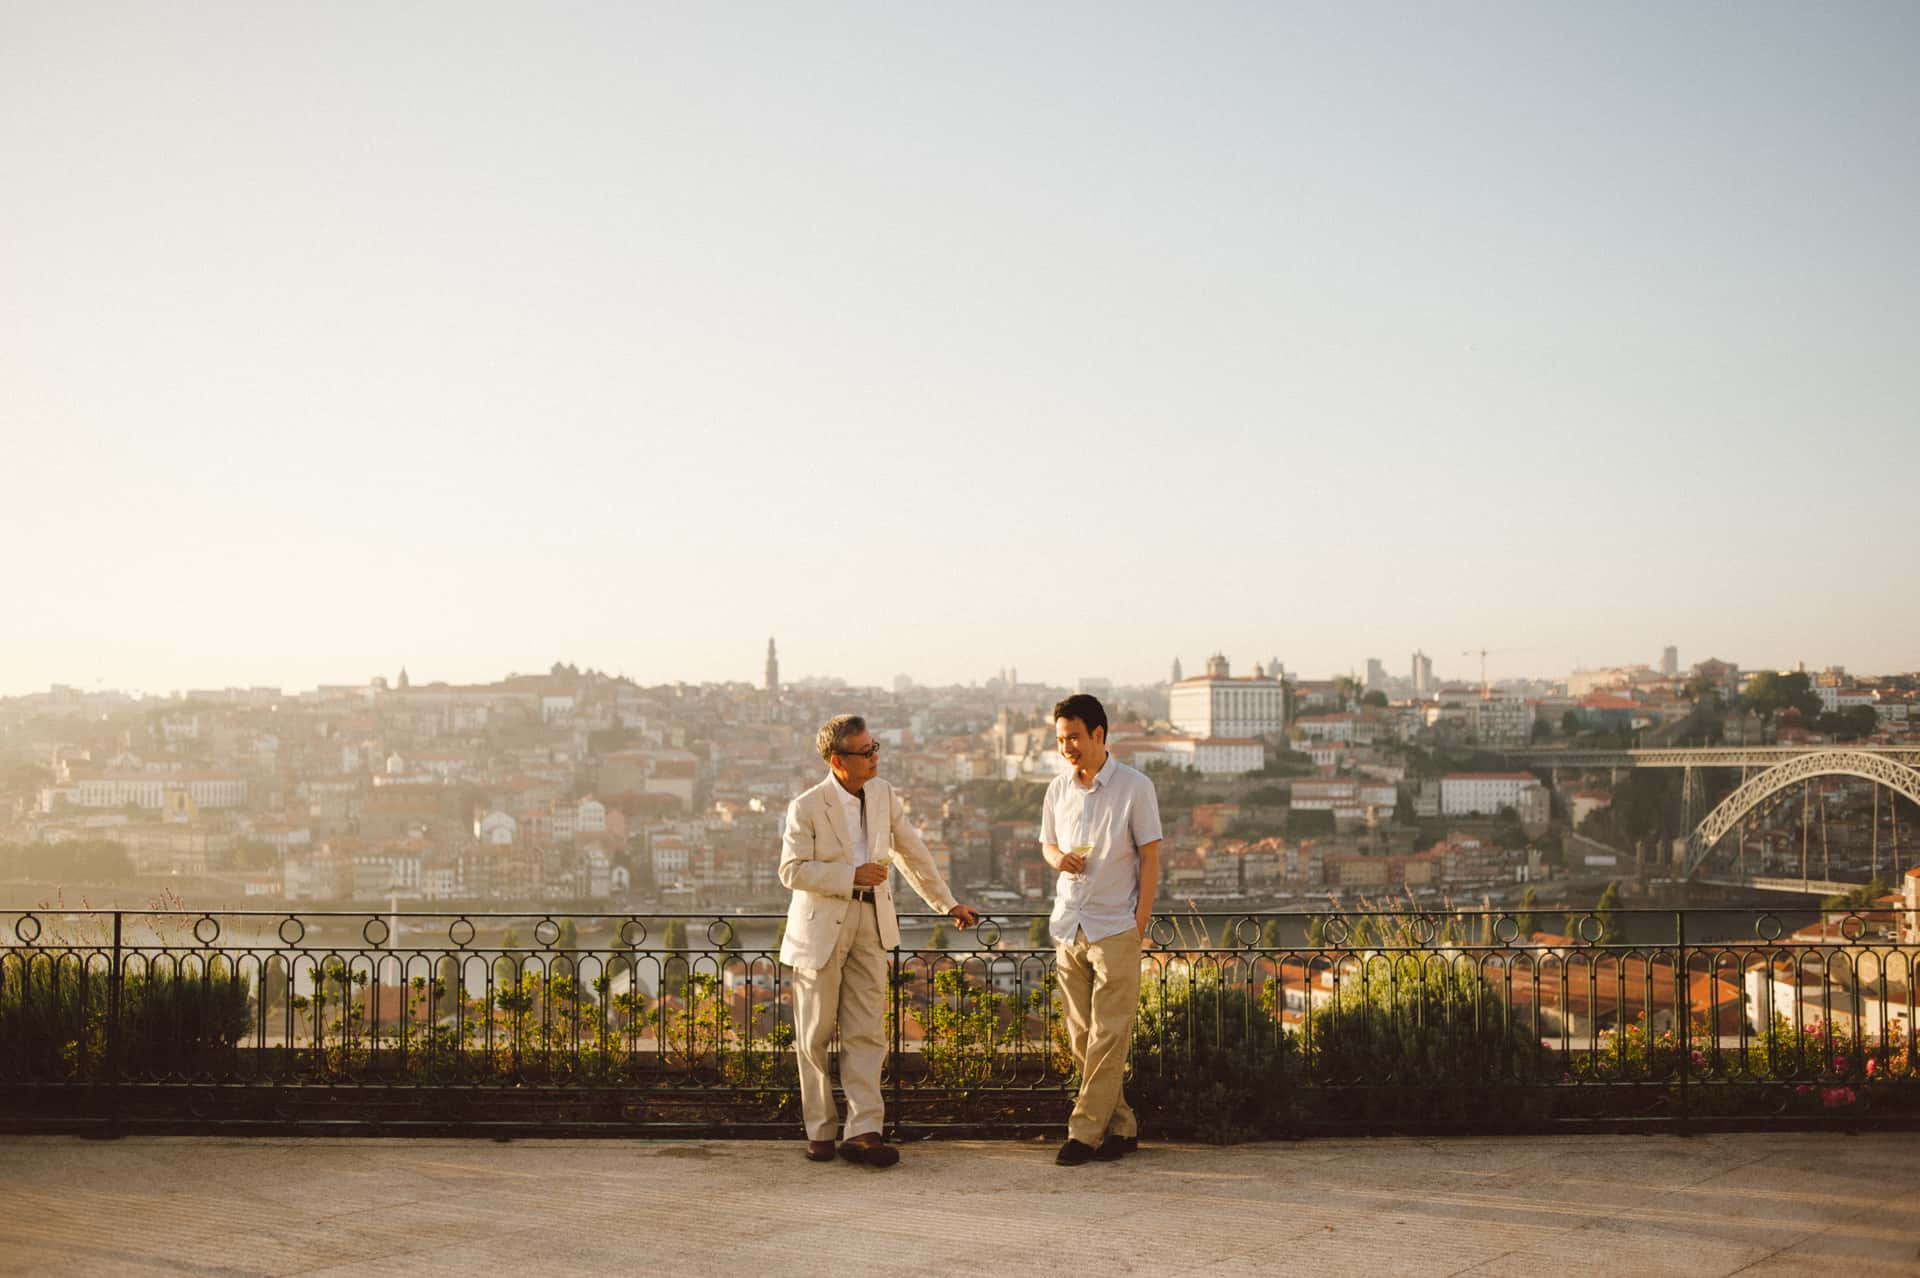 Best wedding images of the year (096 of 316)